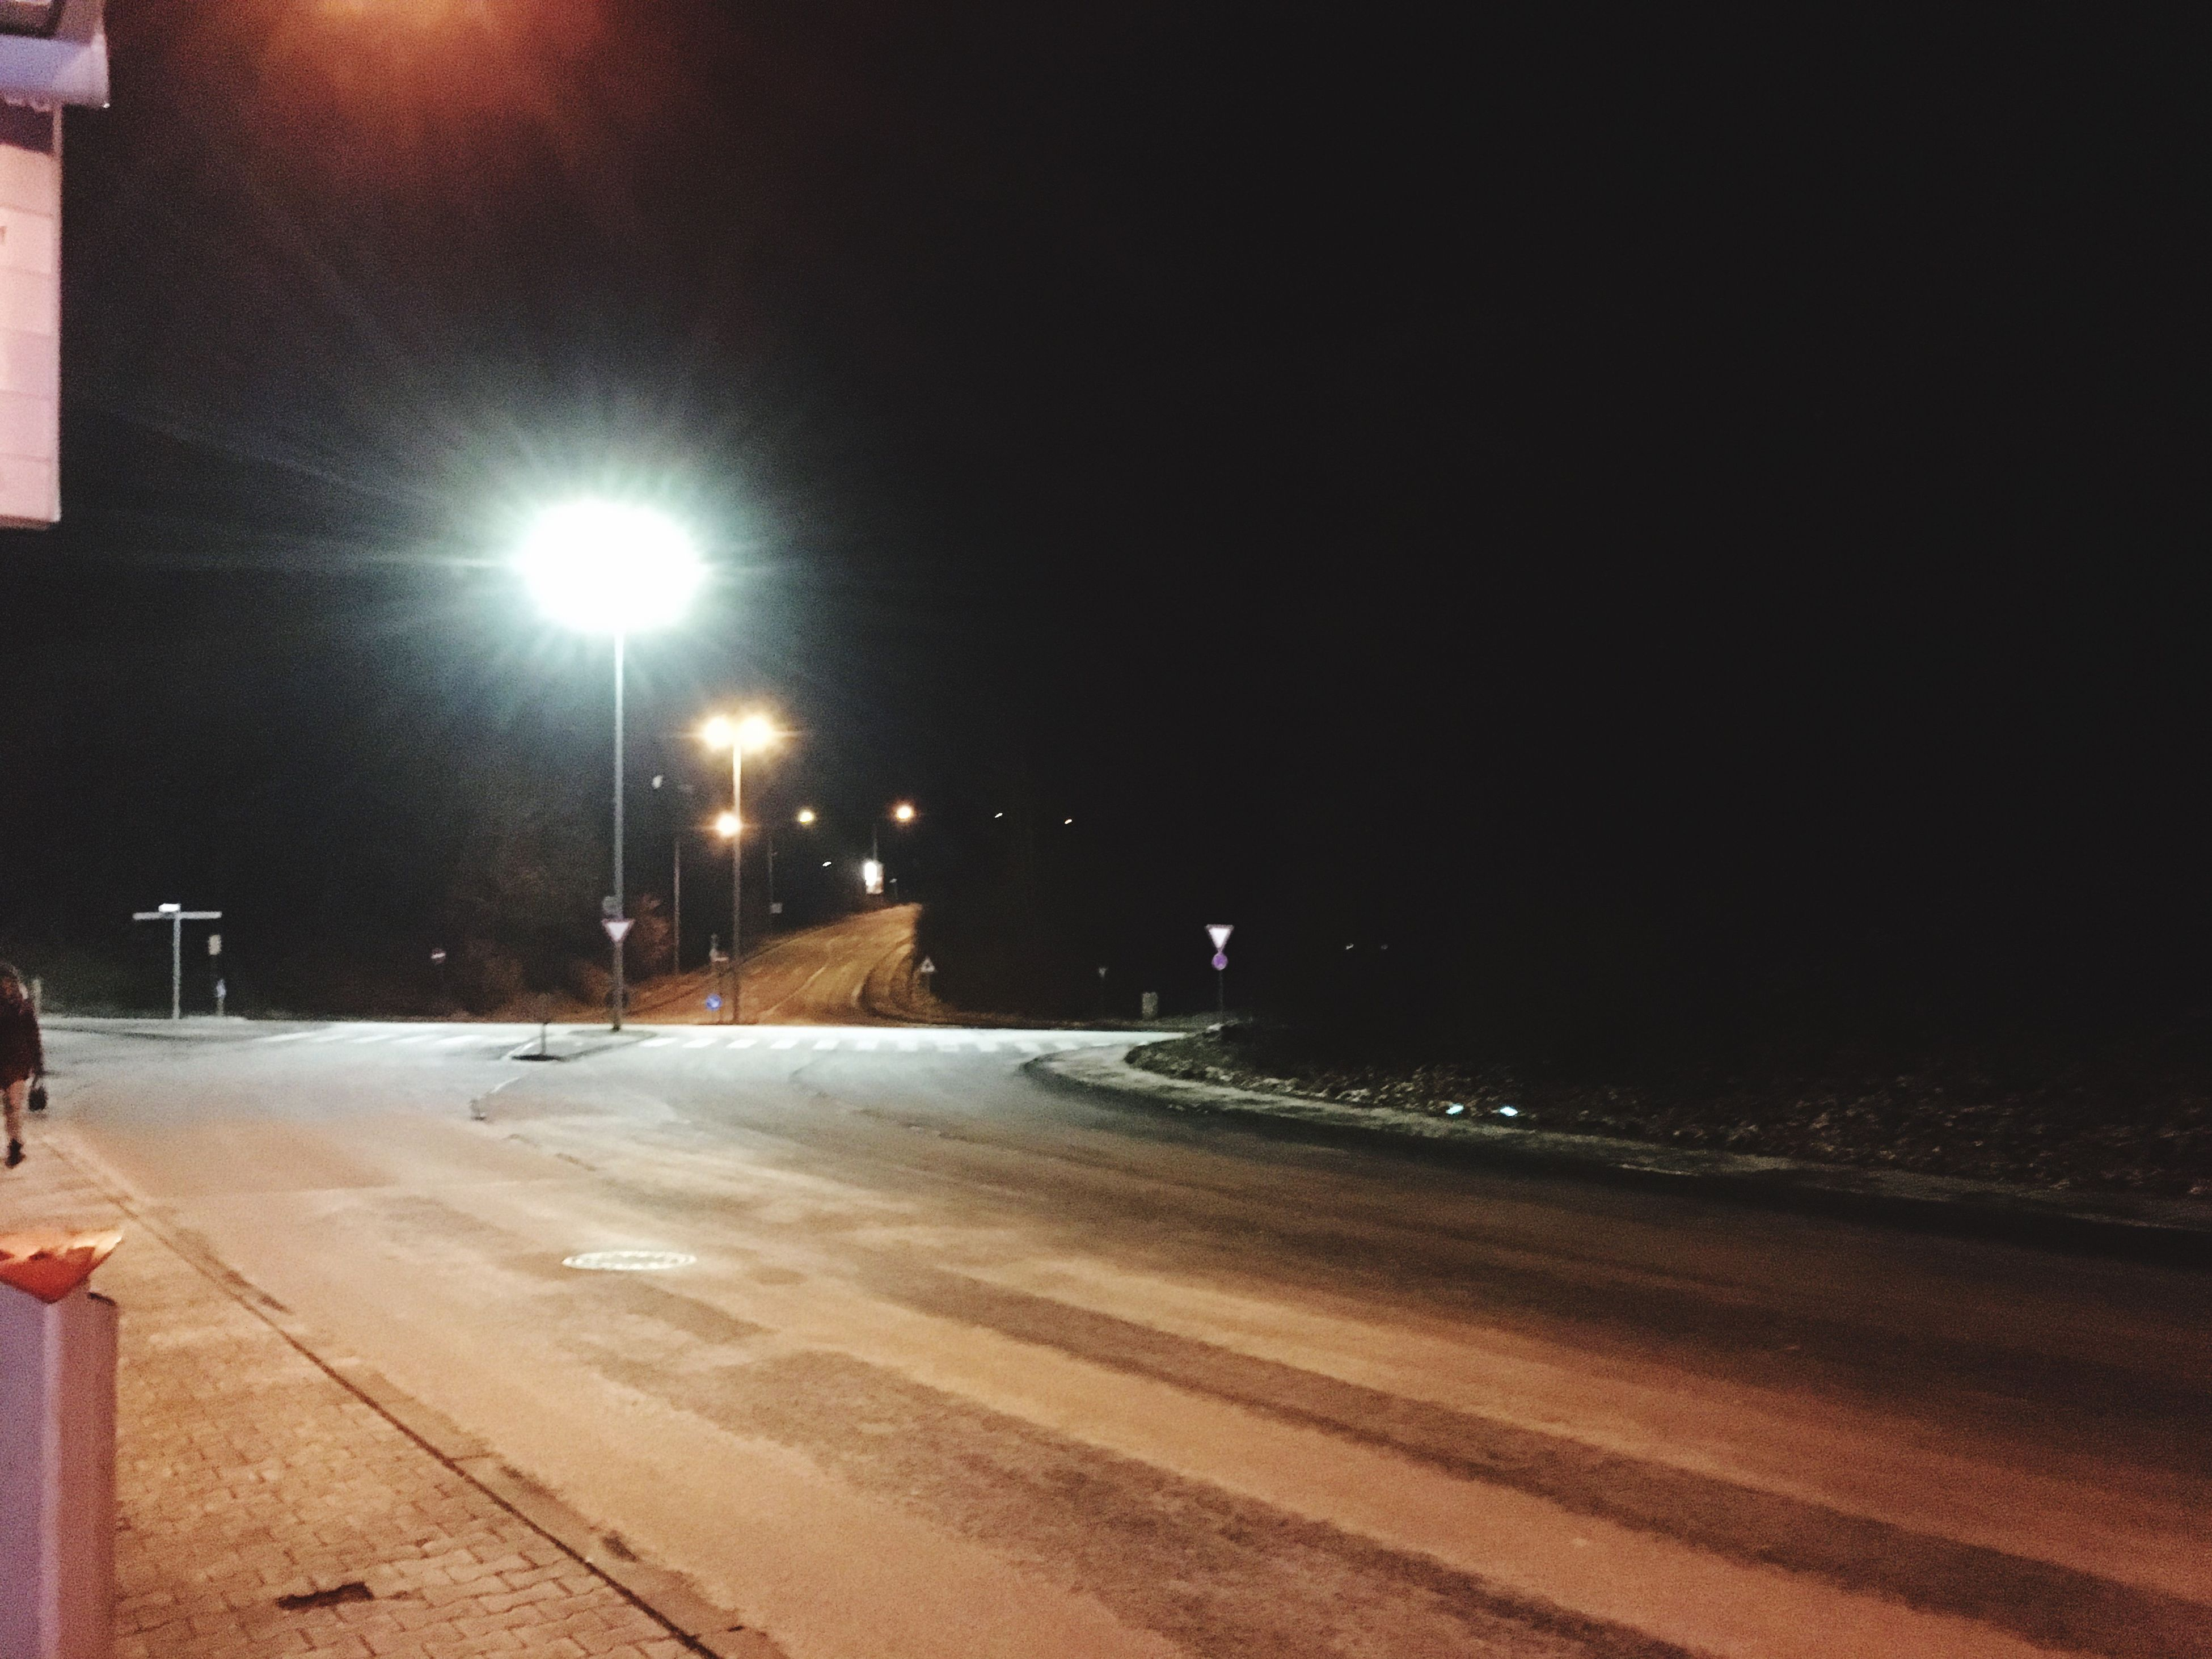 snow, winter, cold temperature, night, street light, illuminated, road, no people, outdoors, nature, snowing, city, sky, beauty in nature, architecture